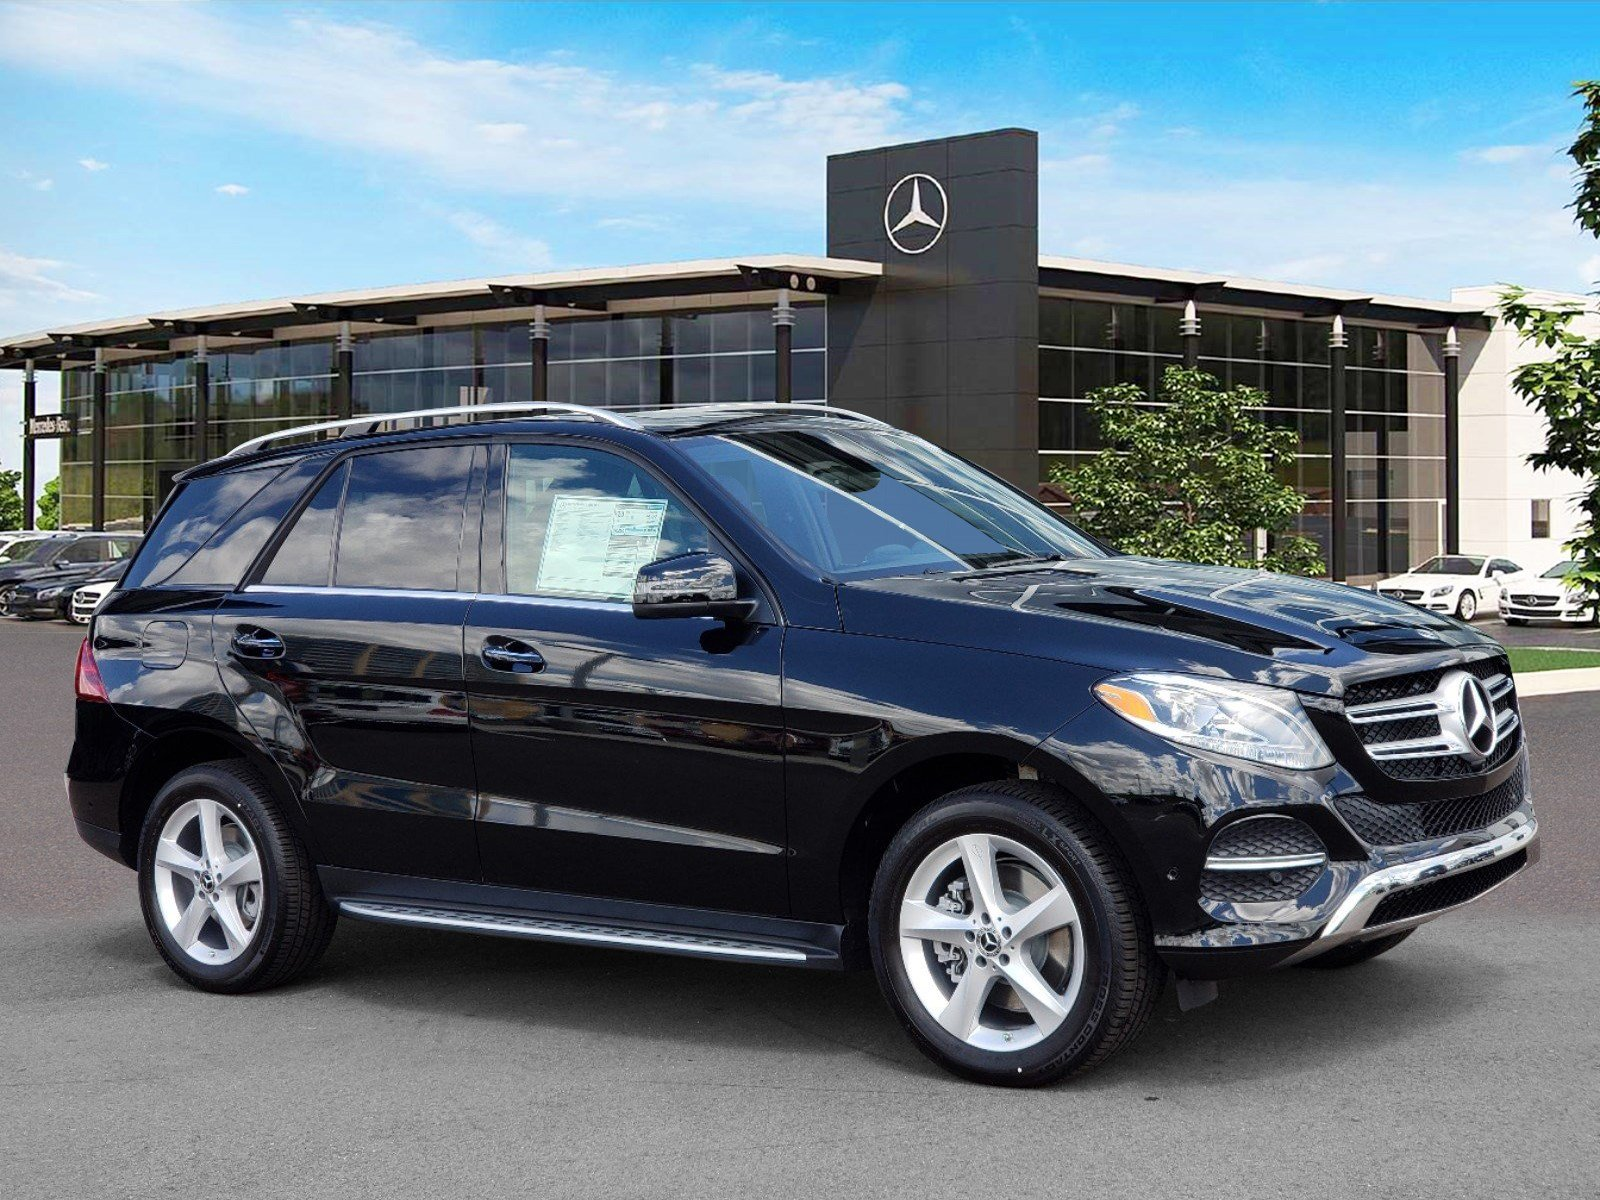 New 2019 Mercedes Benz GLE GLE 400 SUV in Ridgeland